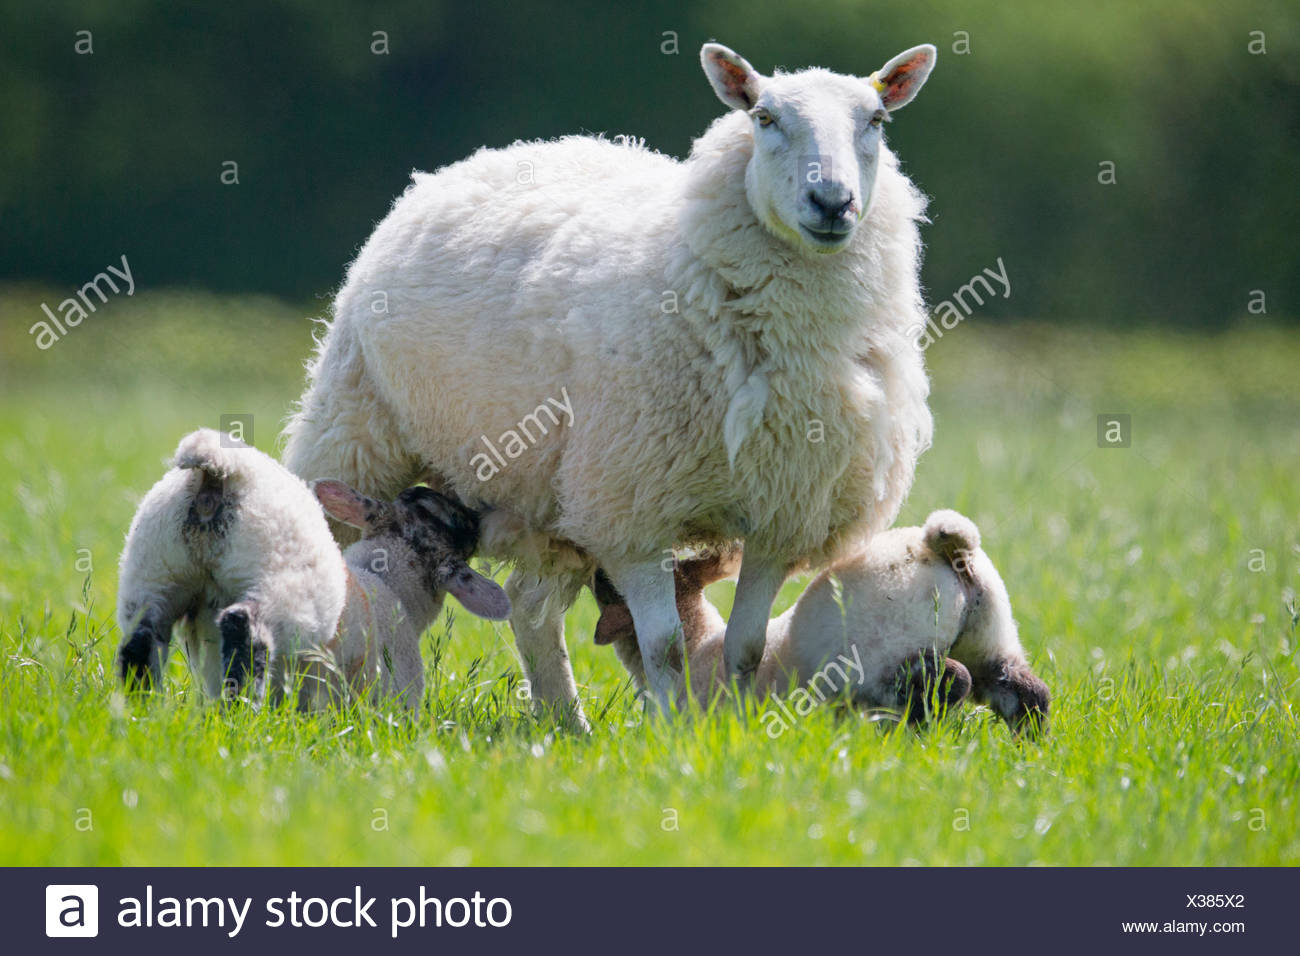 Lambs suckling sheep in sunny green spring field - Stock Image